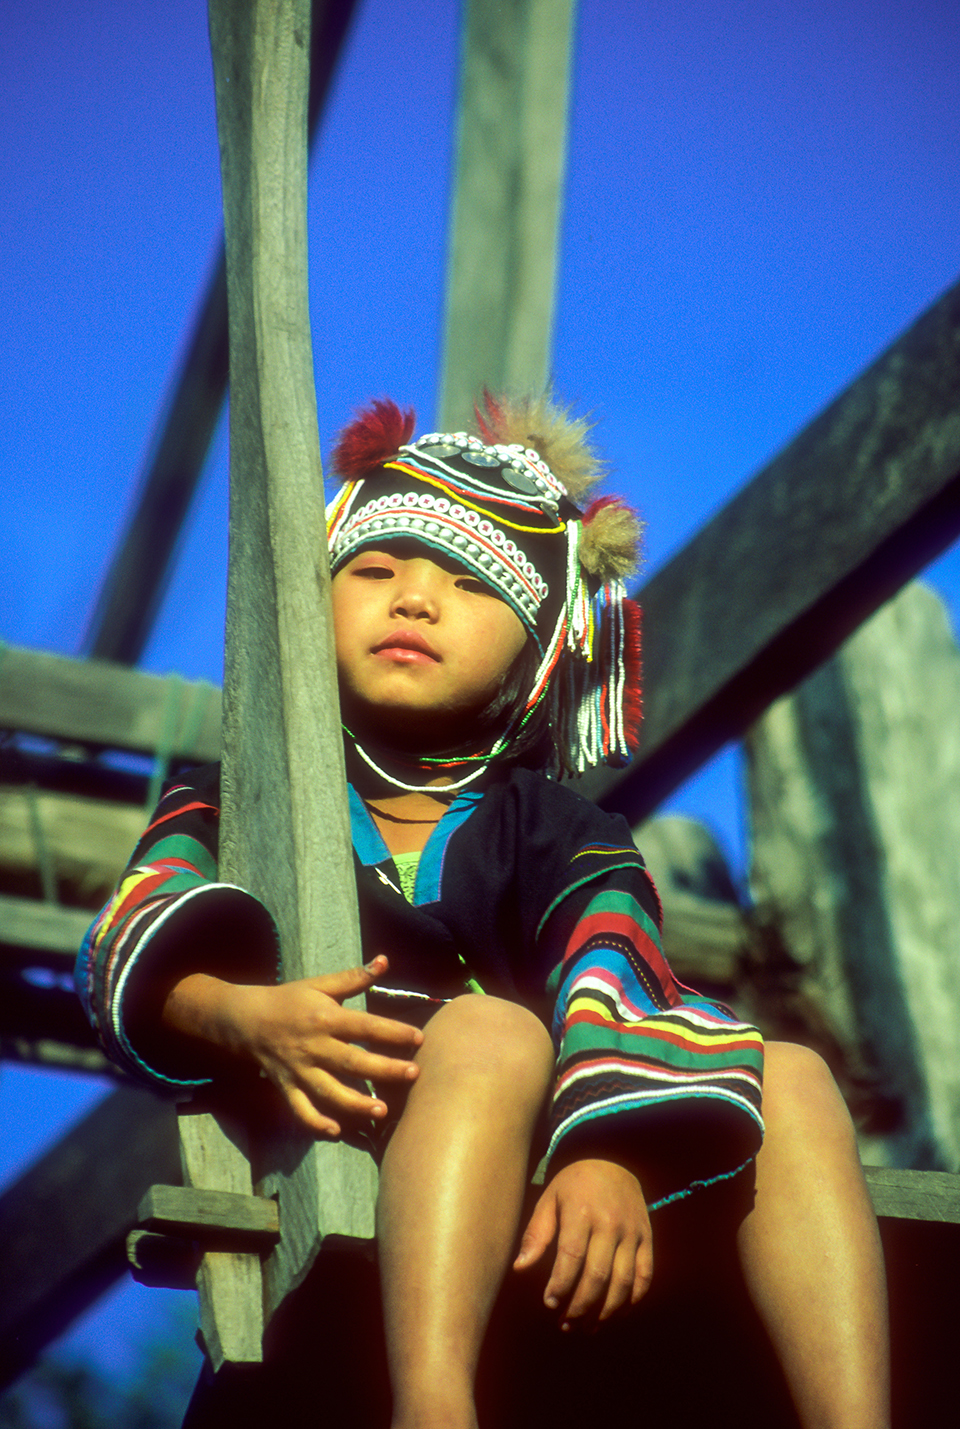 Young Akha girl on swing in Northern Thailand, Thailand. 1998 PS.jpg